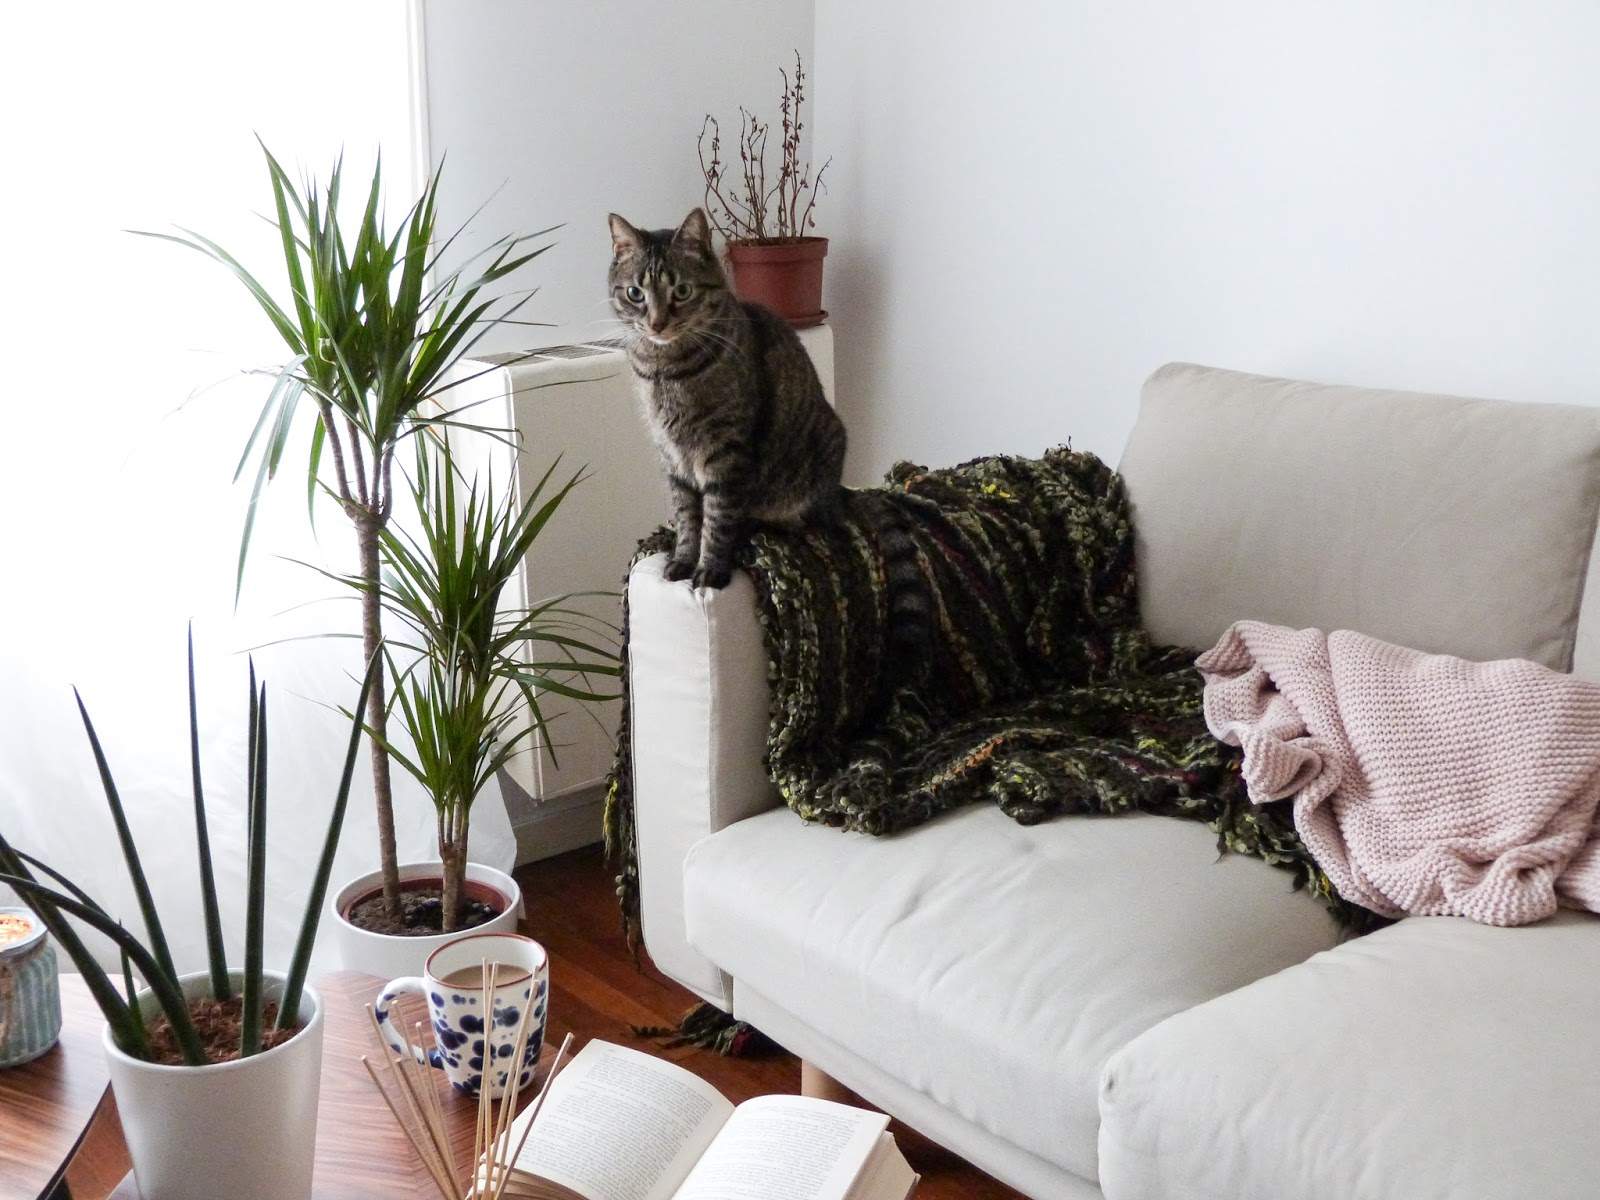 Life hacks for cat owners